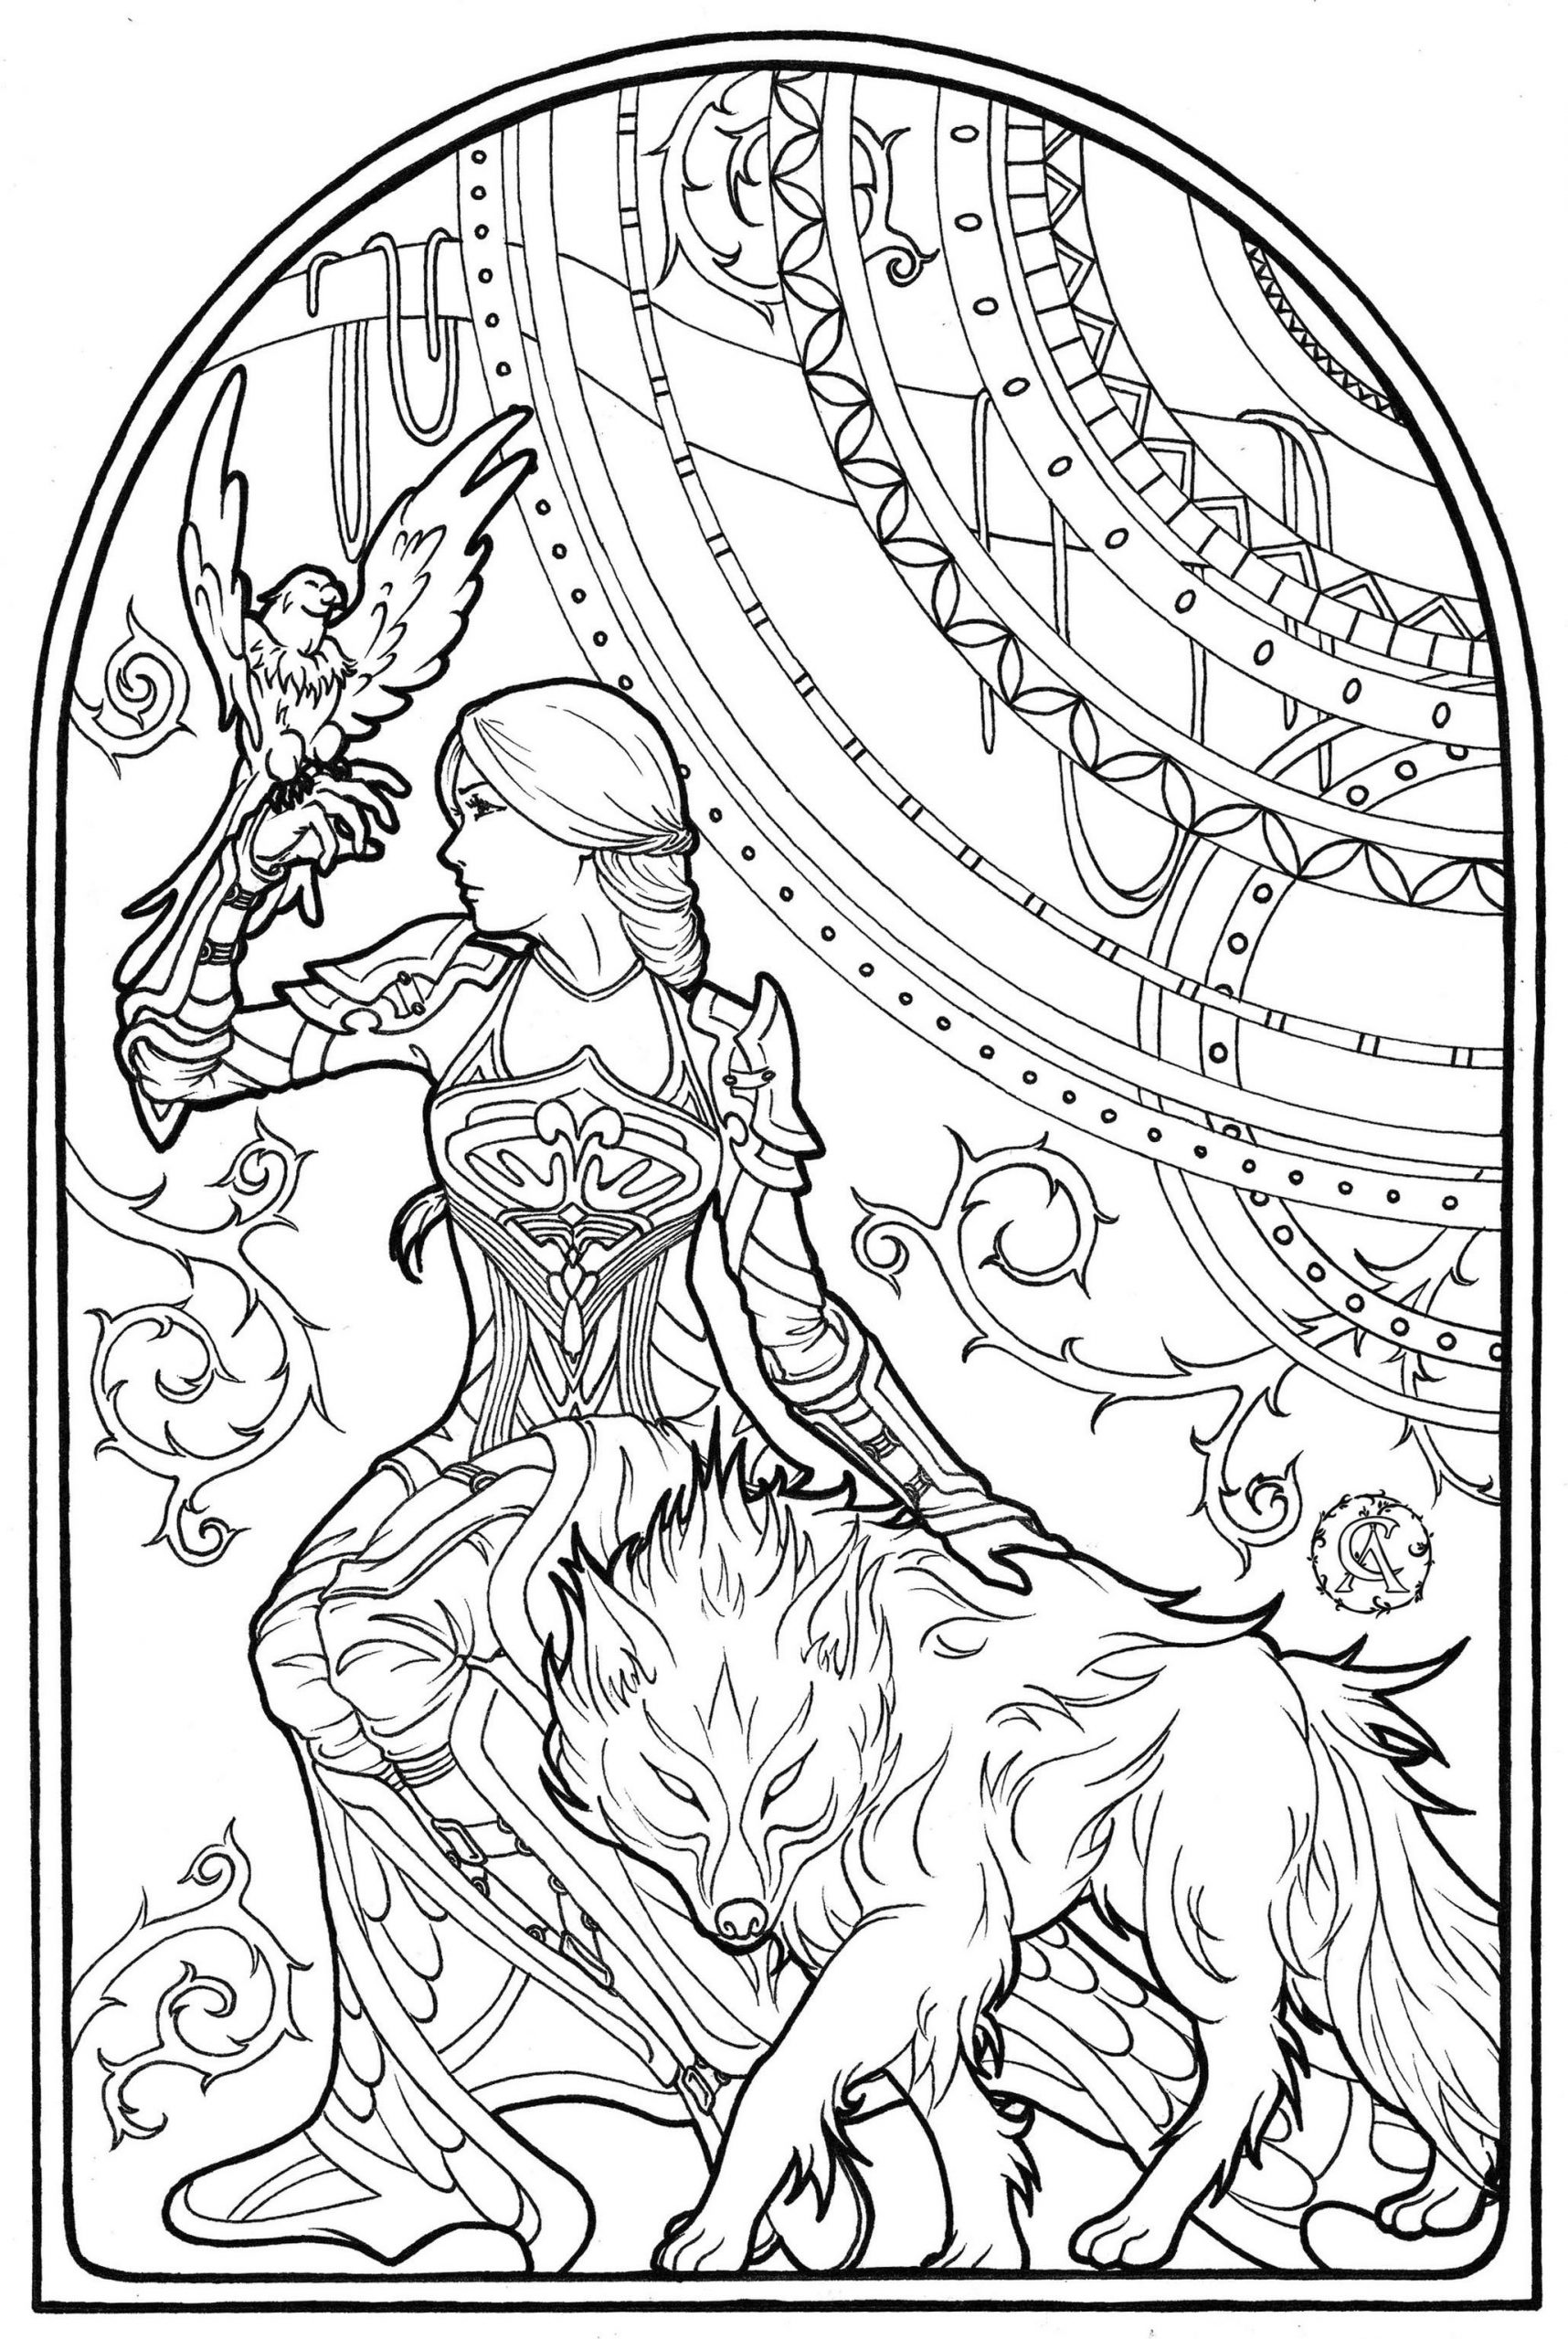 20 Free Printable Adult Fantasy Coloring Pages Everfreecoloring Com